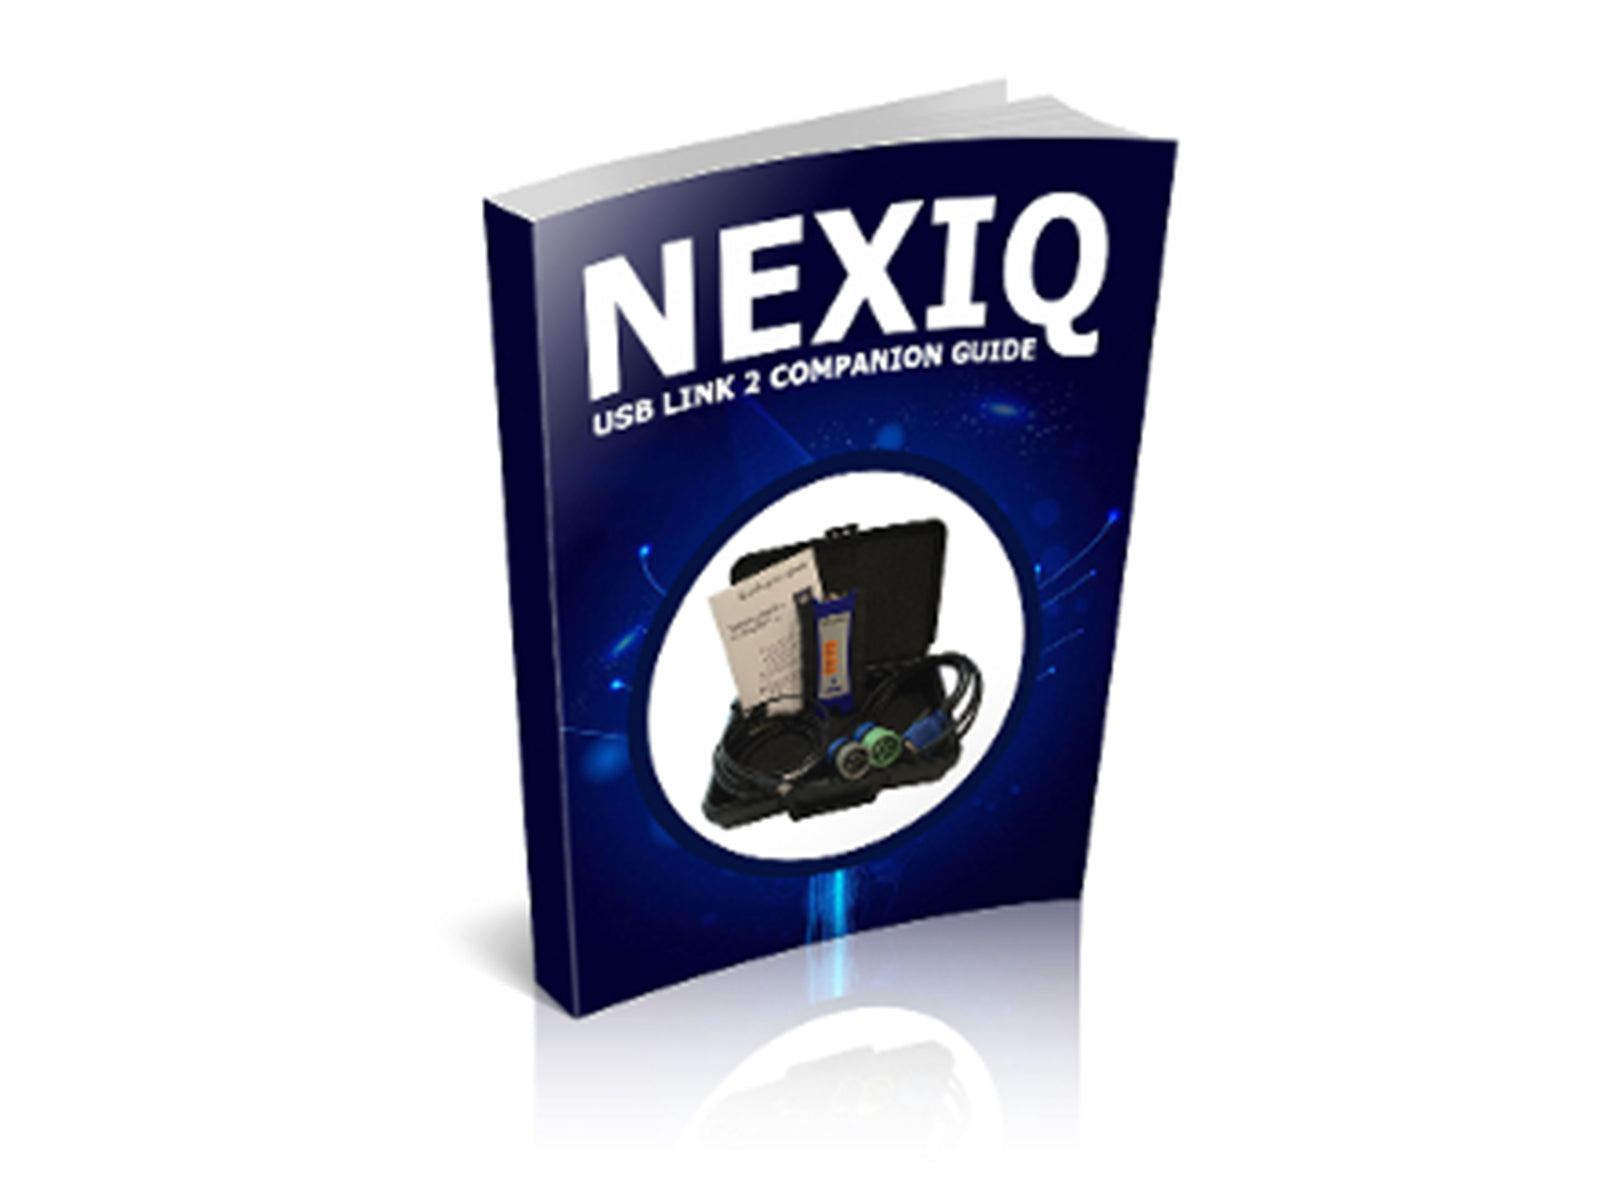 Nexiq USB Link 2 Companion Guide